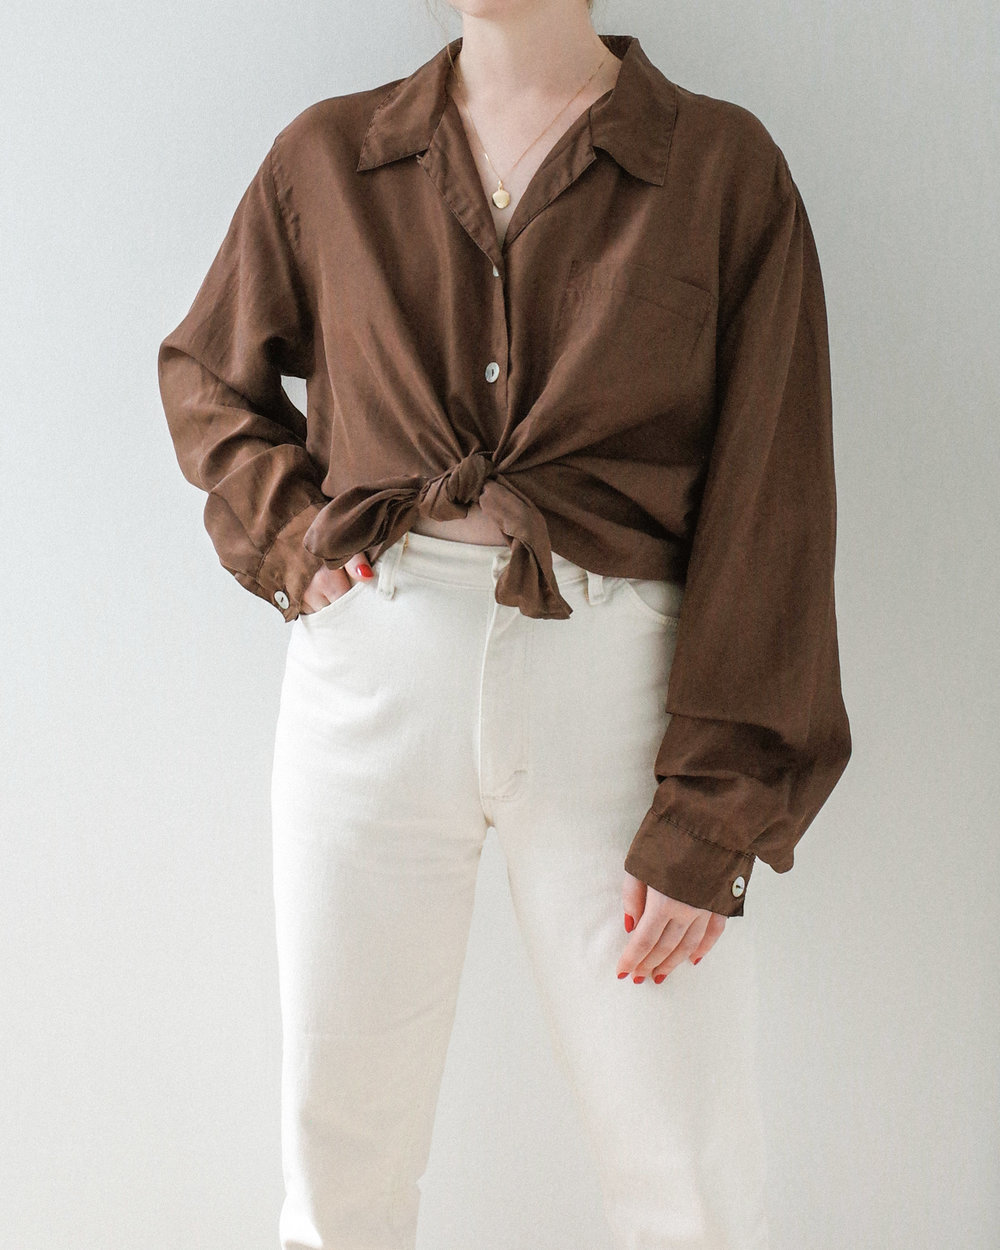 2516a878 BROWN SILK BUTTON UP BLOUSE WITH CAPIZ SHELL BUTTON — BASIS STUDIO